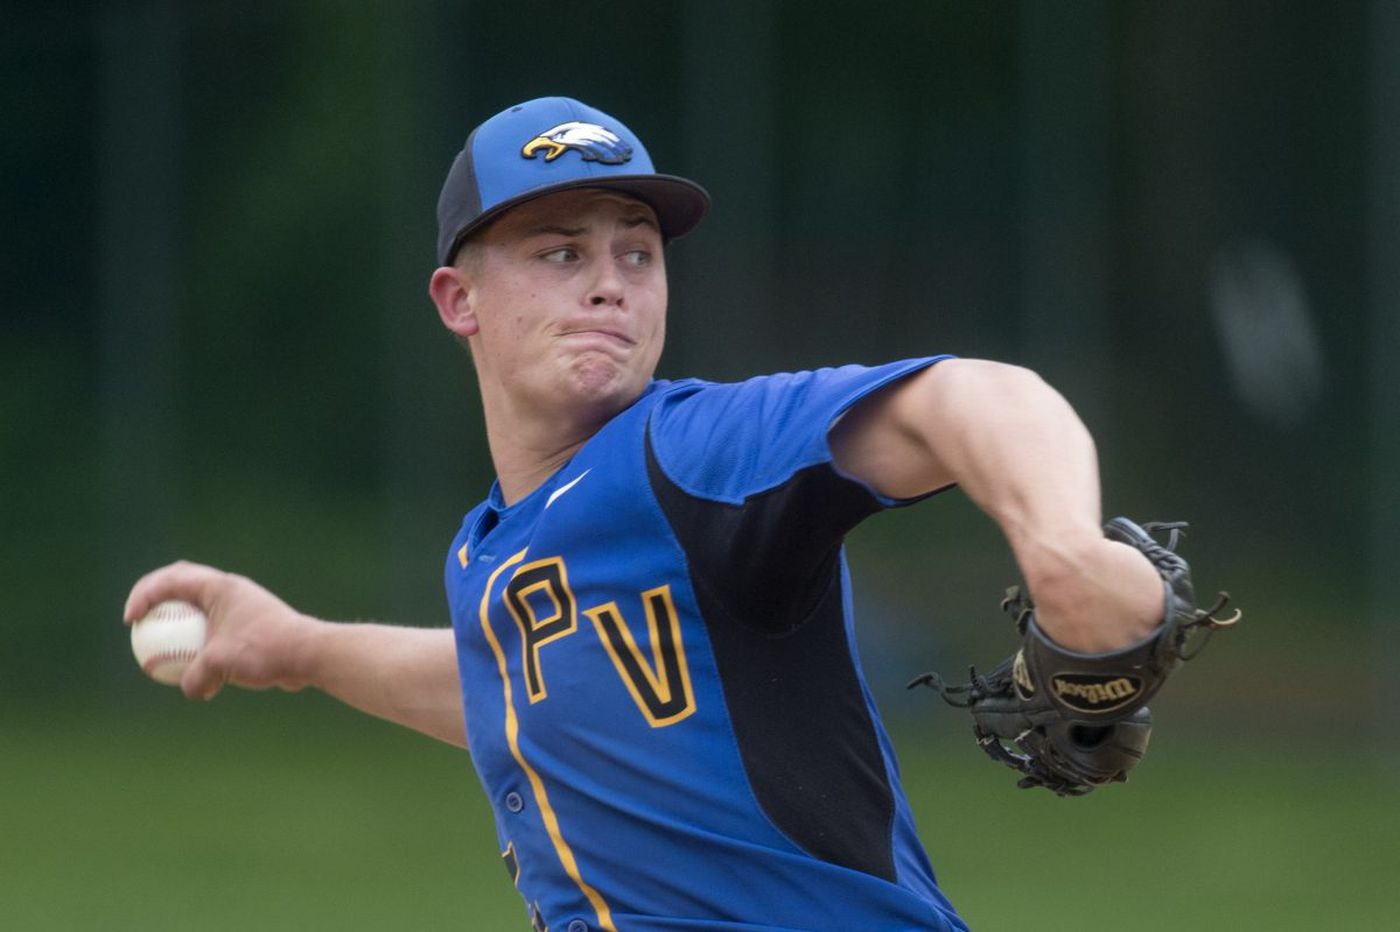 Do-it-all Max Dineen leads the way for Pennsville baseball team